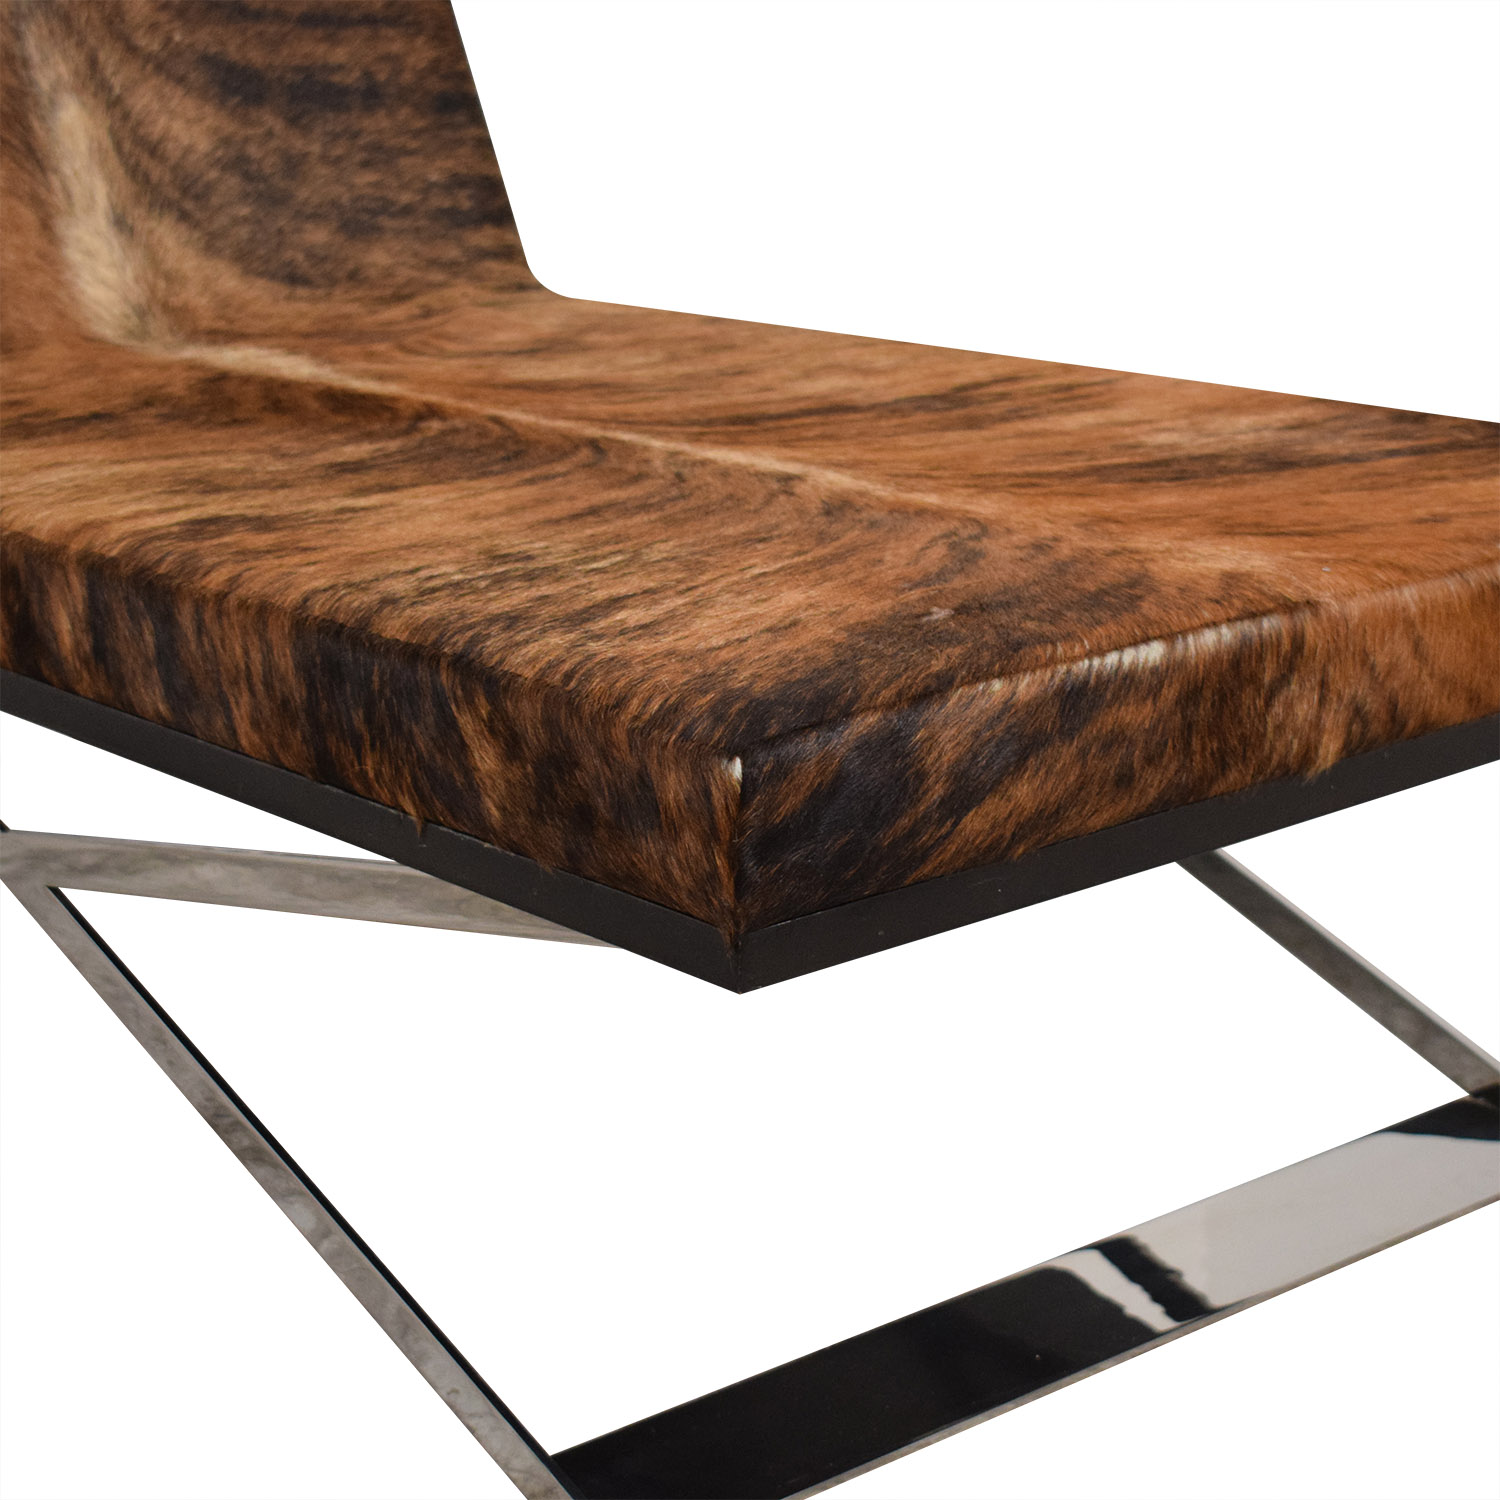 Moura Starr Moura Starr Kalup Chaise Lounge in Araca Cow Hide Chaises